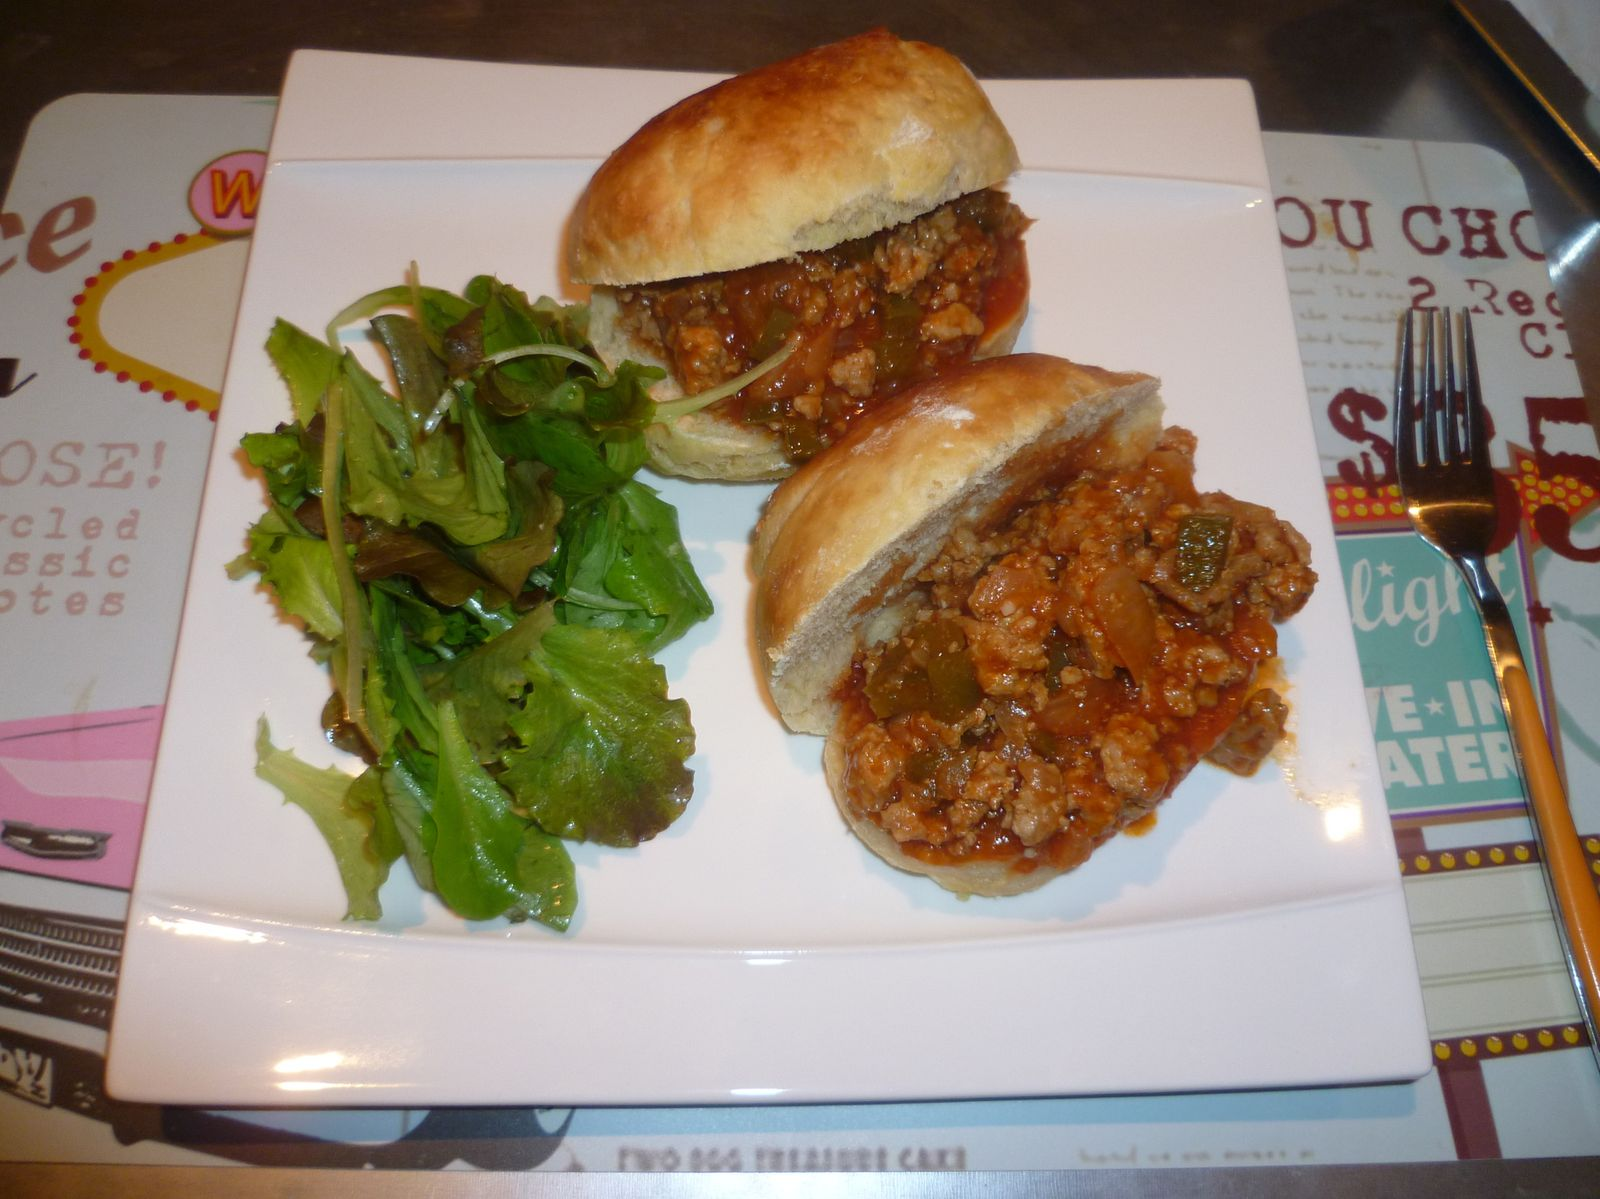 Sloppy Joe (Joe le « débordant »)